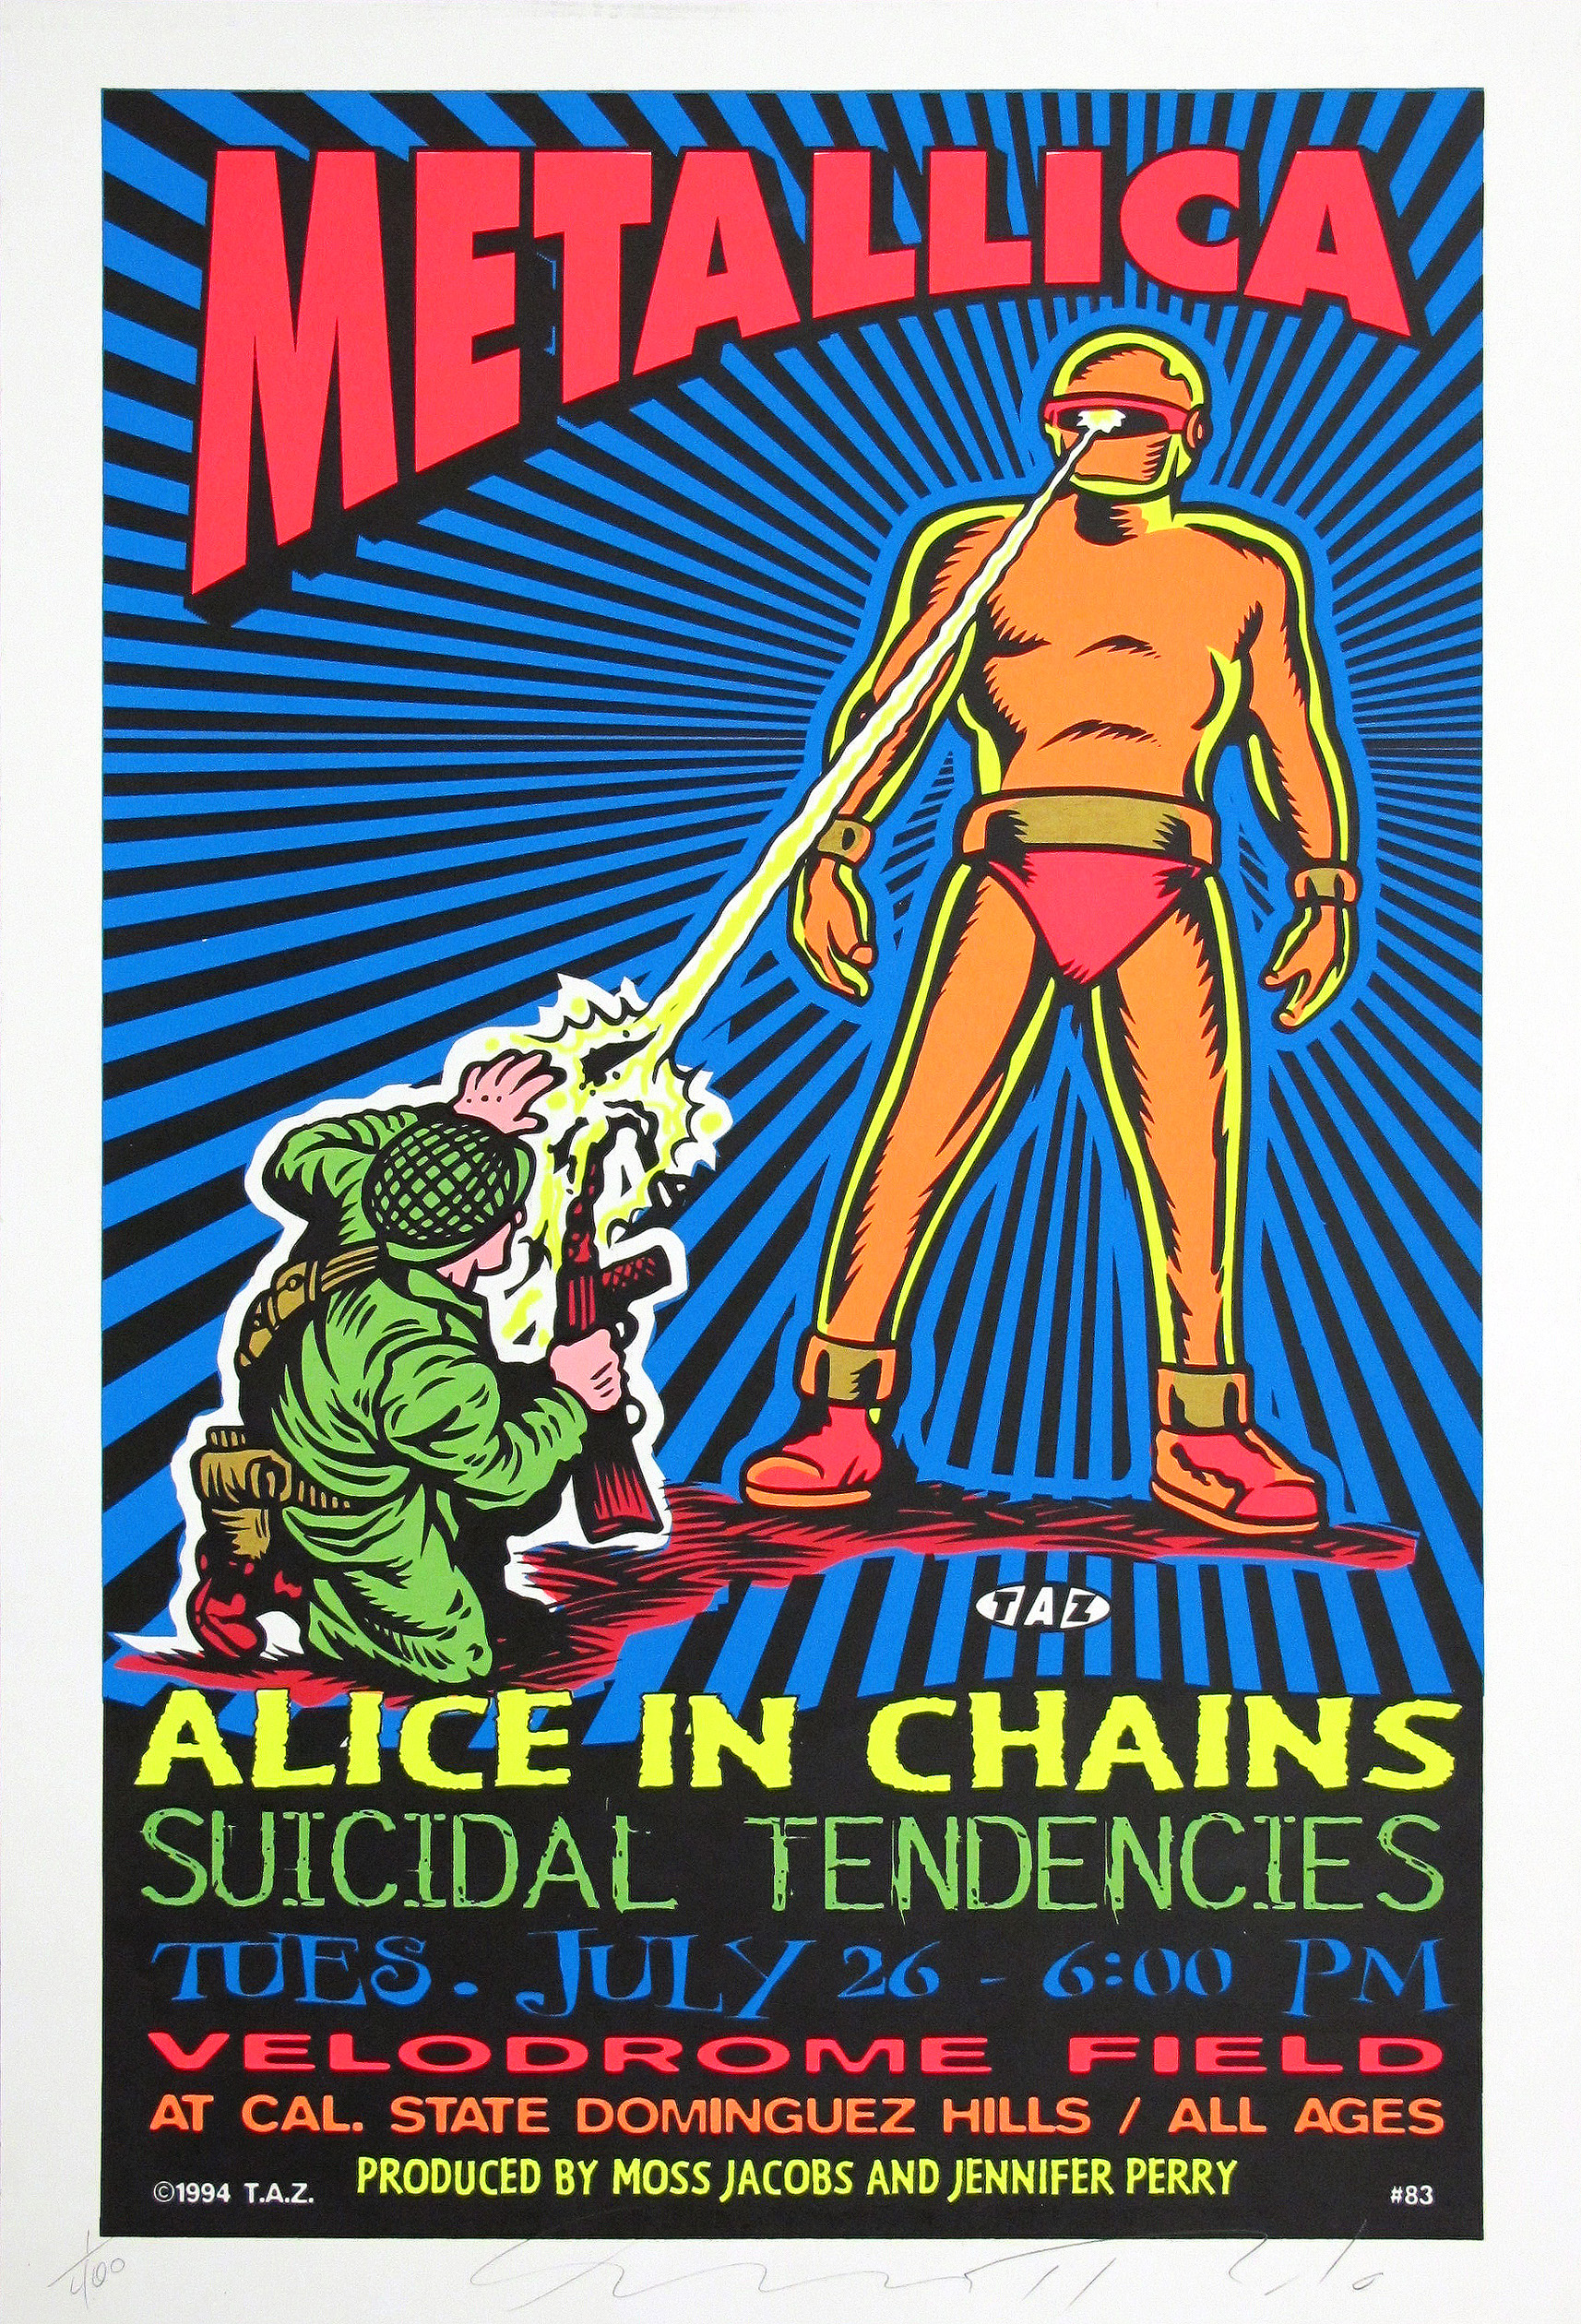 Some of the Coolest Concert Posters Ever - Primus | Guff